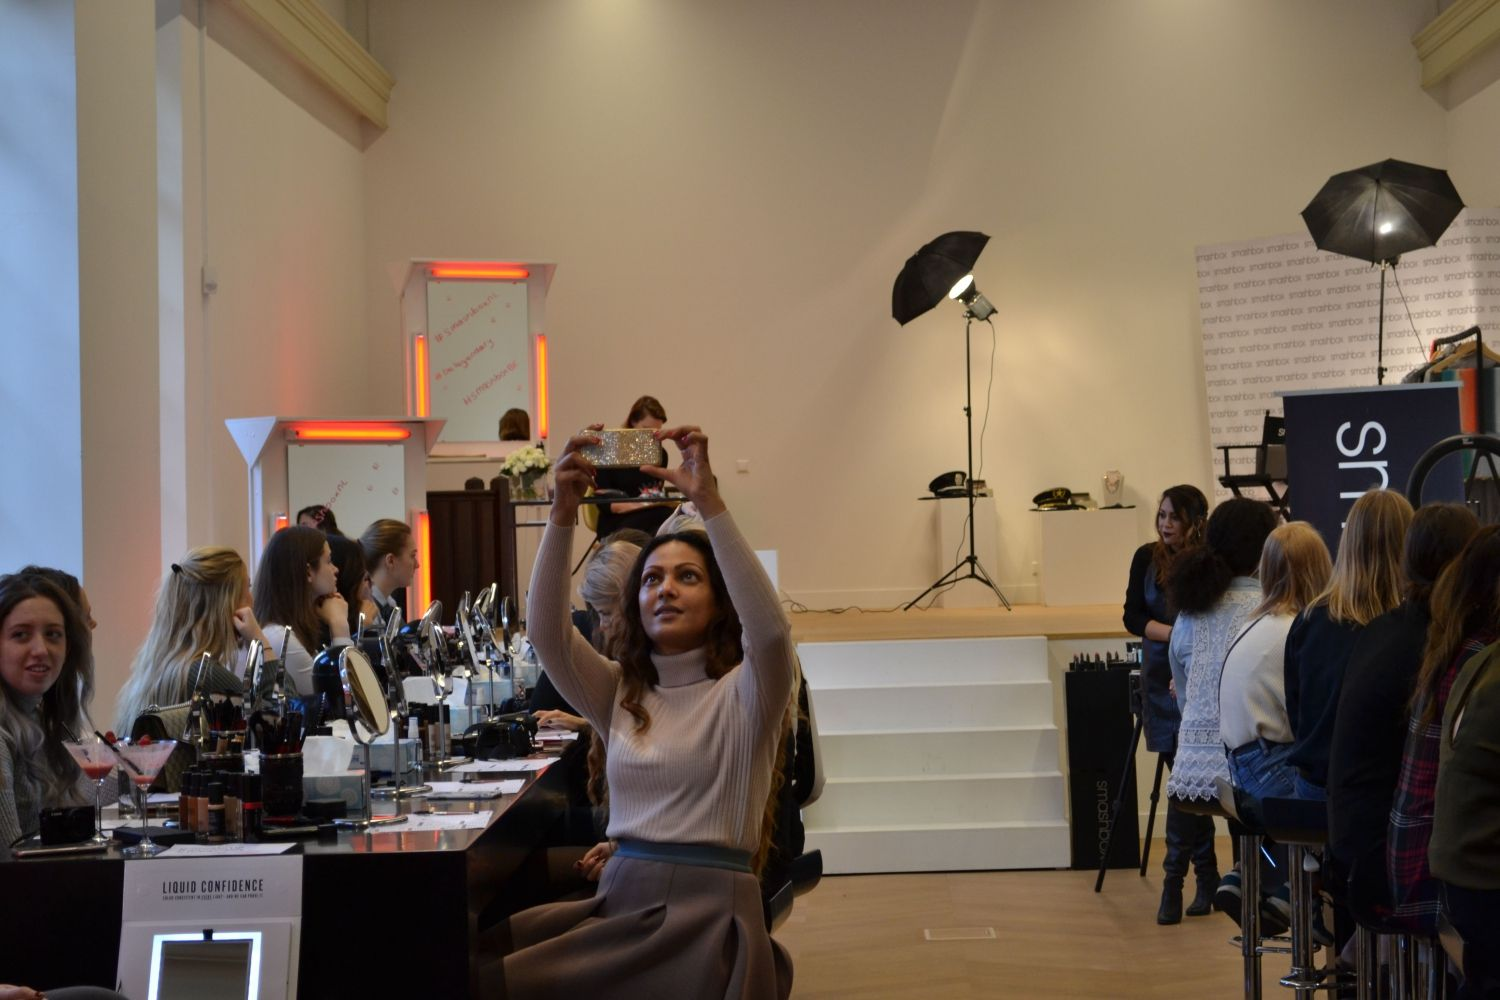 smashbox-influencers-makeup-event-benelux-8